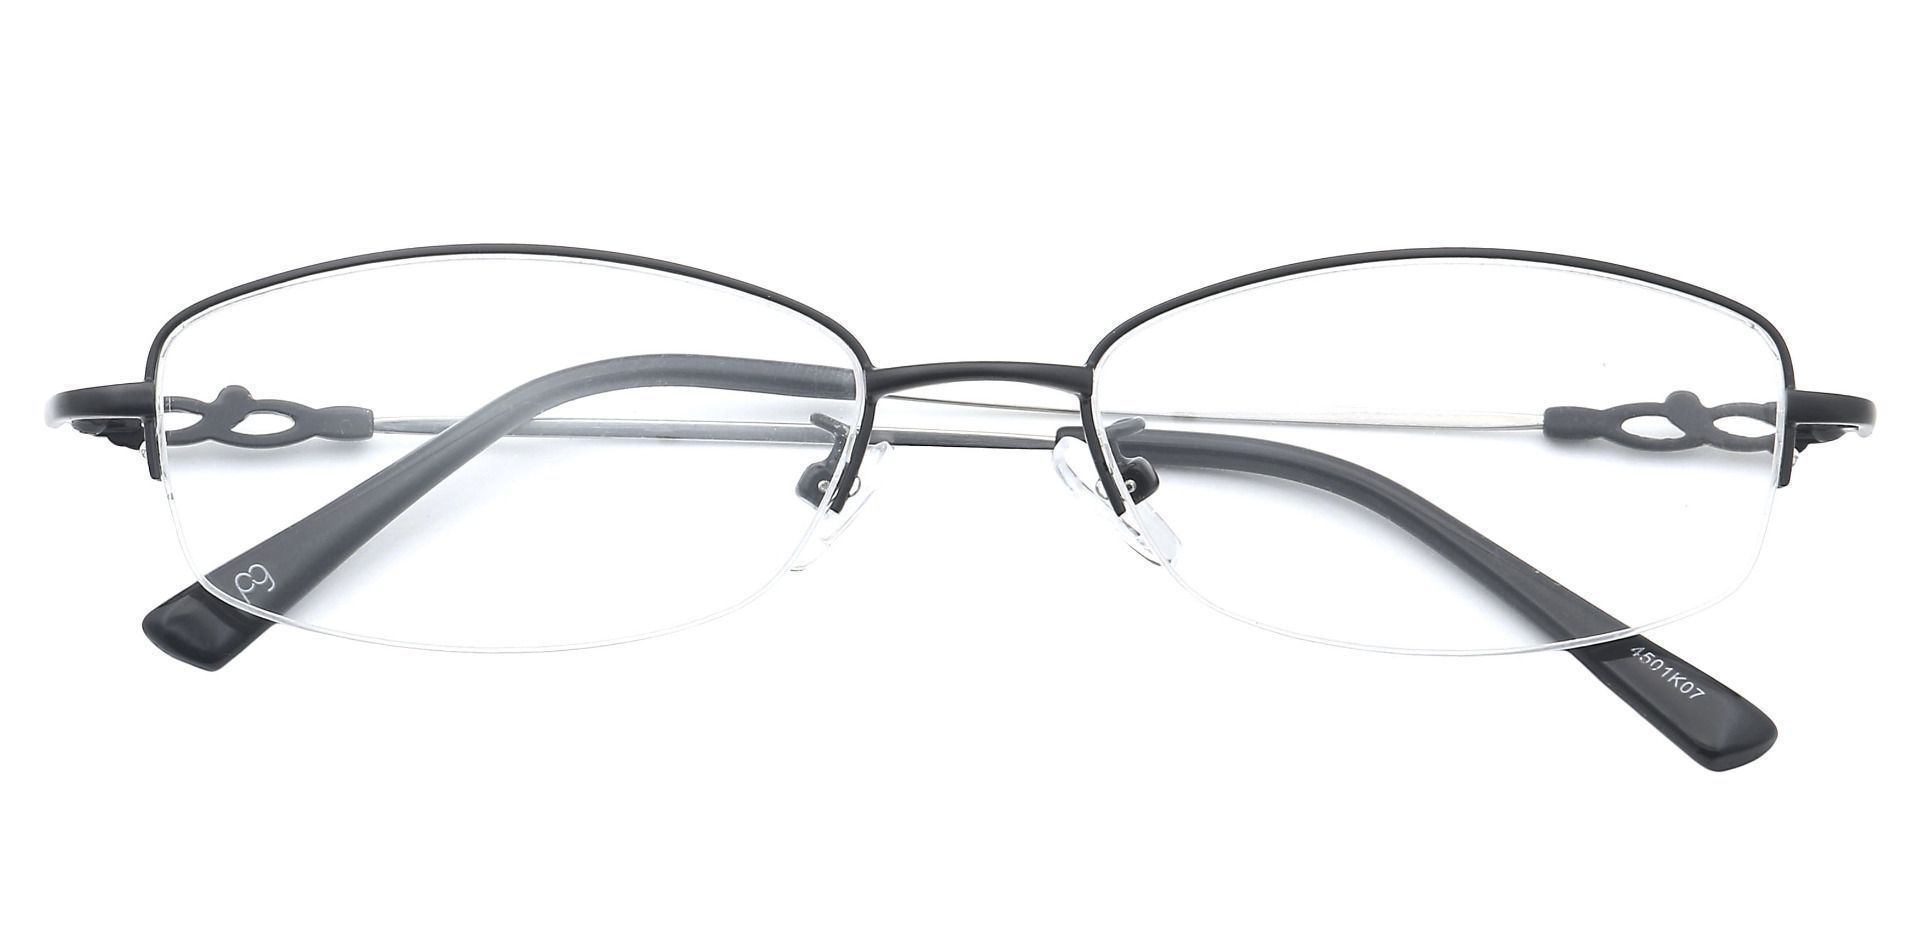 Meadowsweet Oval Eyeglasses Frame - Black